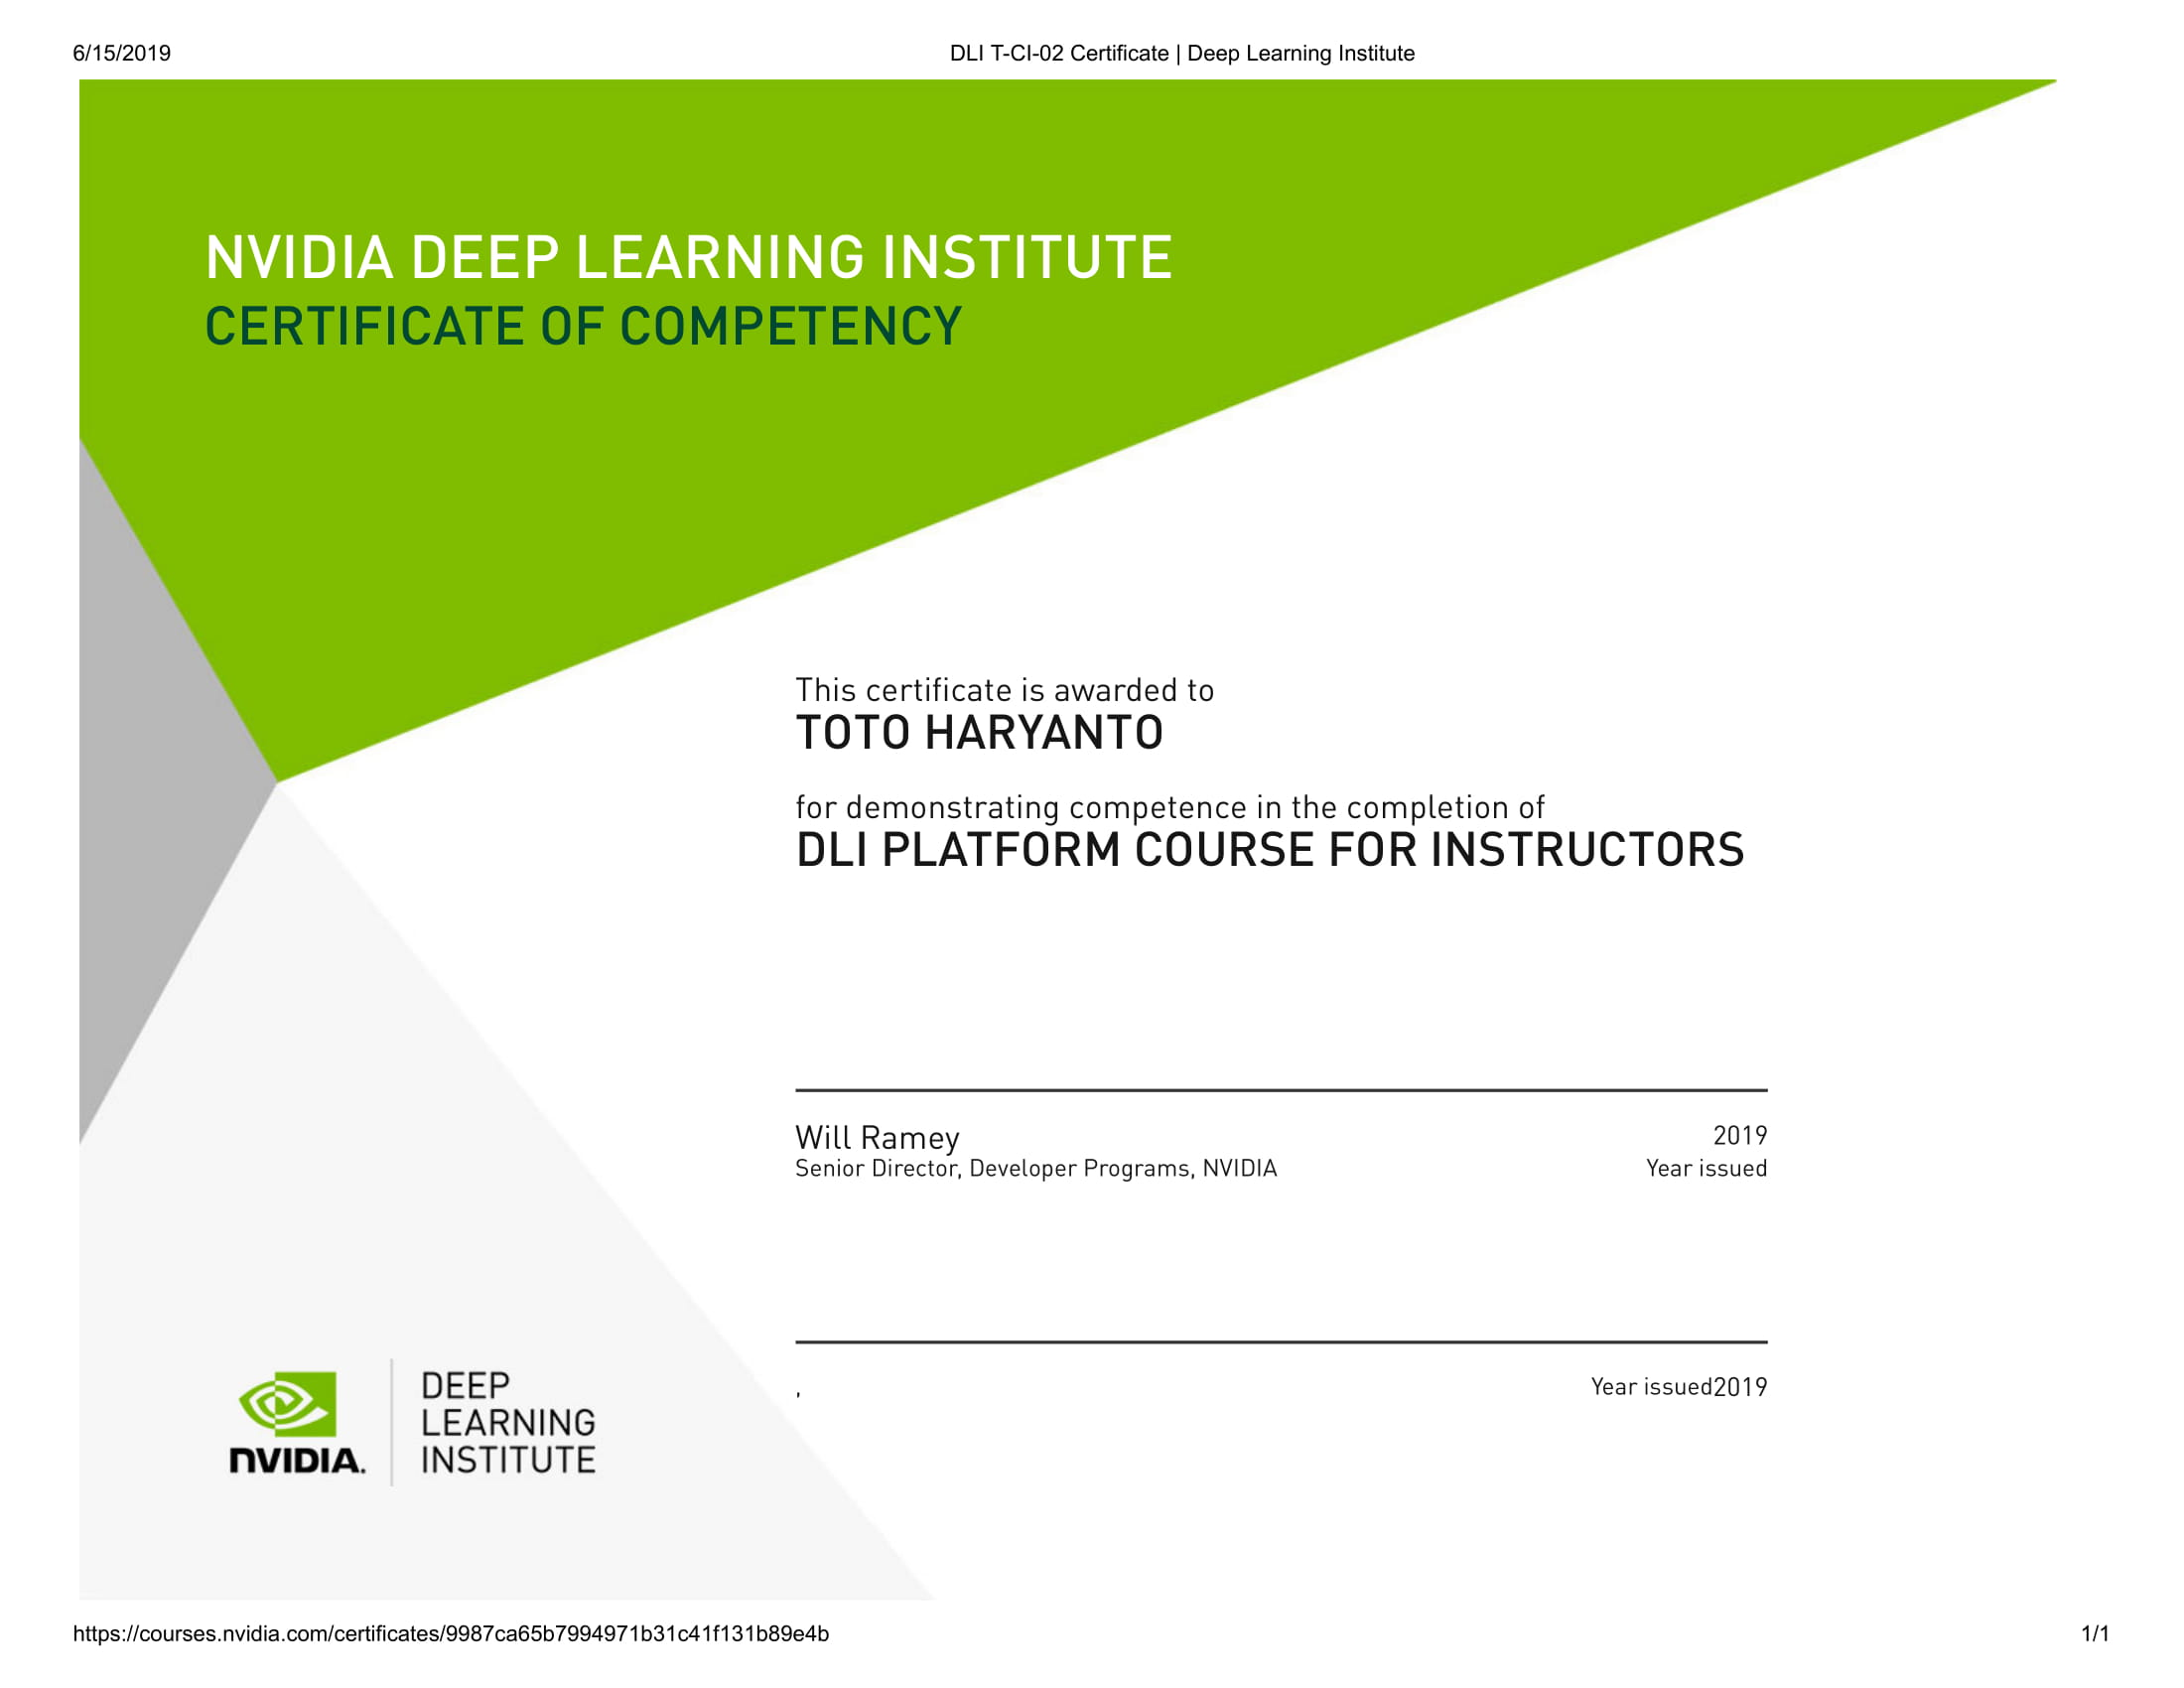 DLI T-CI-02 Certificate _ Deep Learning Institute-1